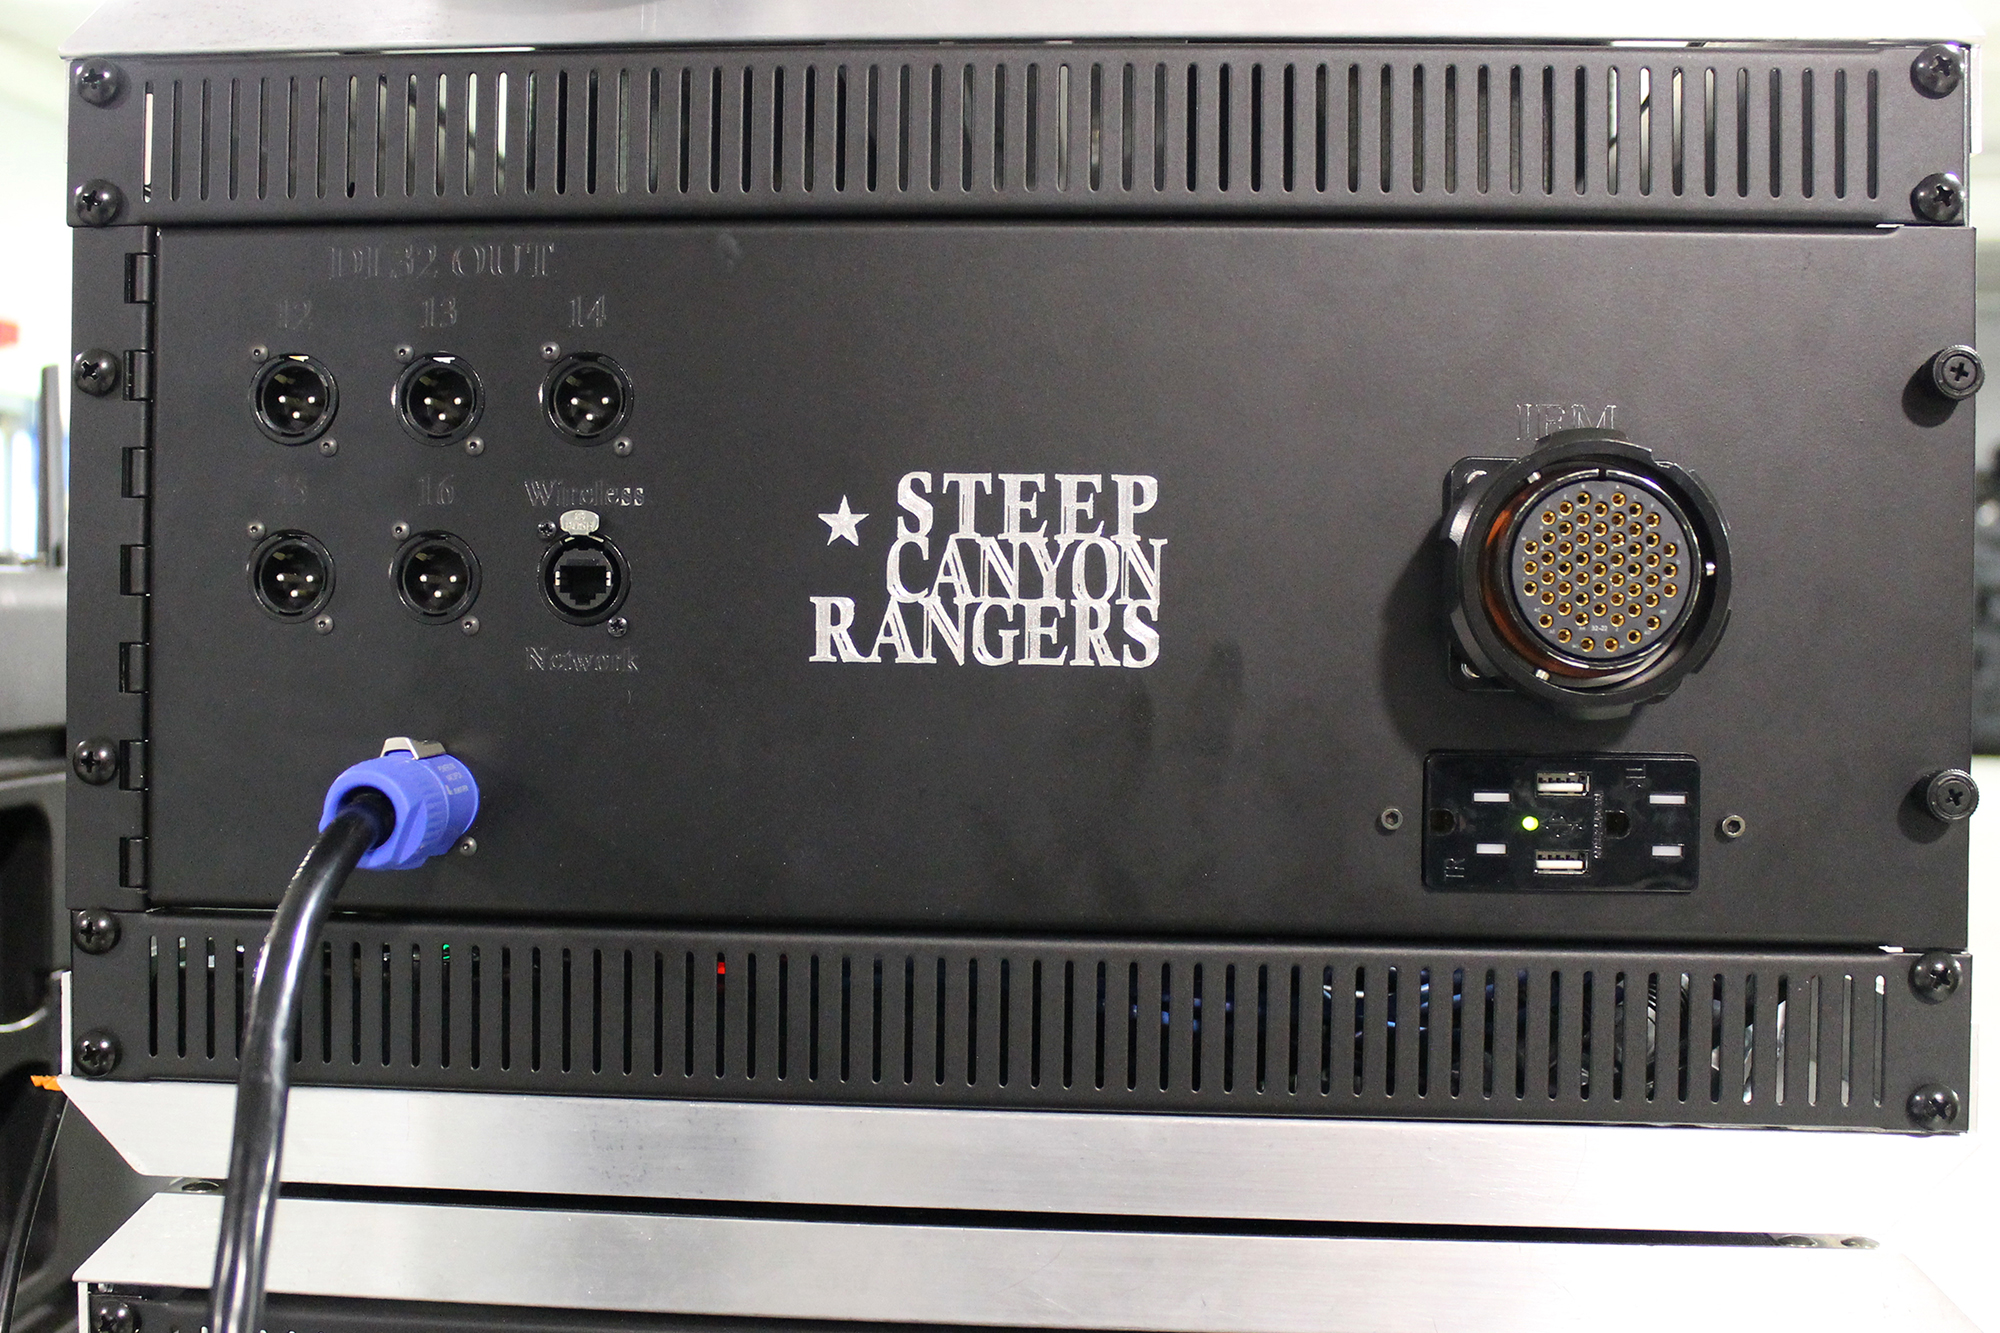 Steep Canyon Rangers Wireless Mobile Racks